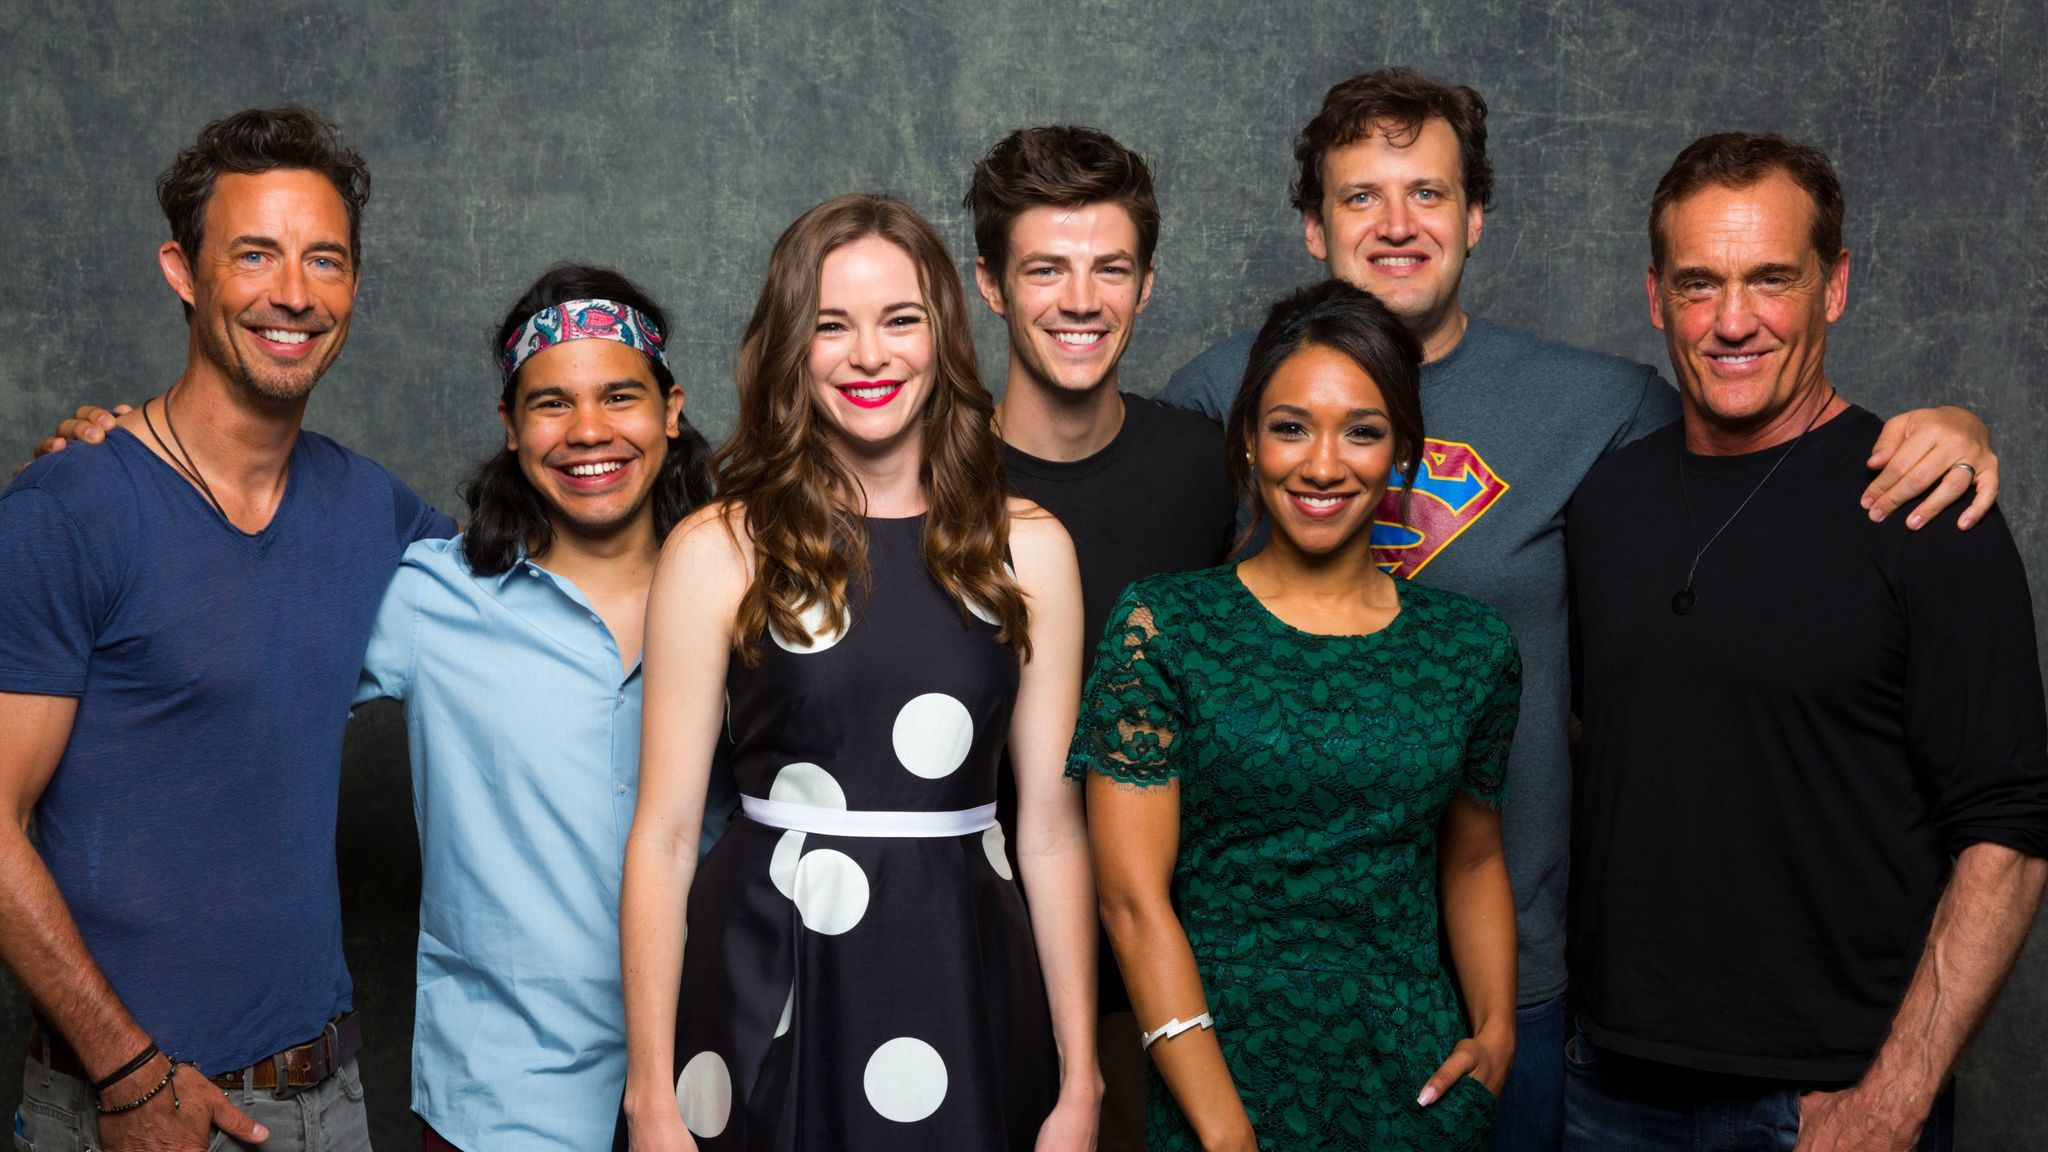 Andrew Kreisberg, second from right, is shown with 'The Flash' team at Comic-Con. (Jay L. Clendenin / Los Angeles Times)